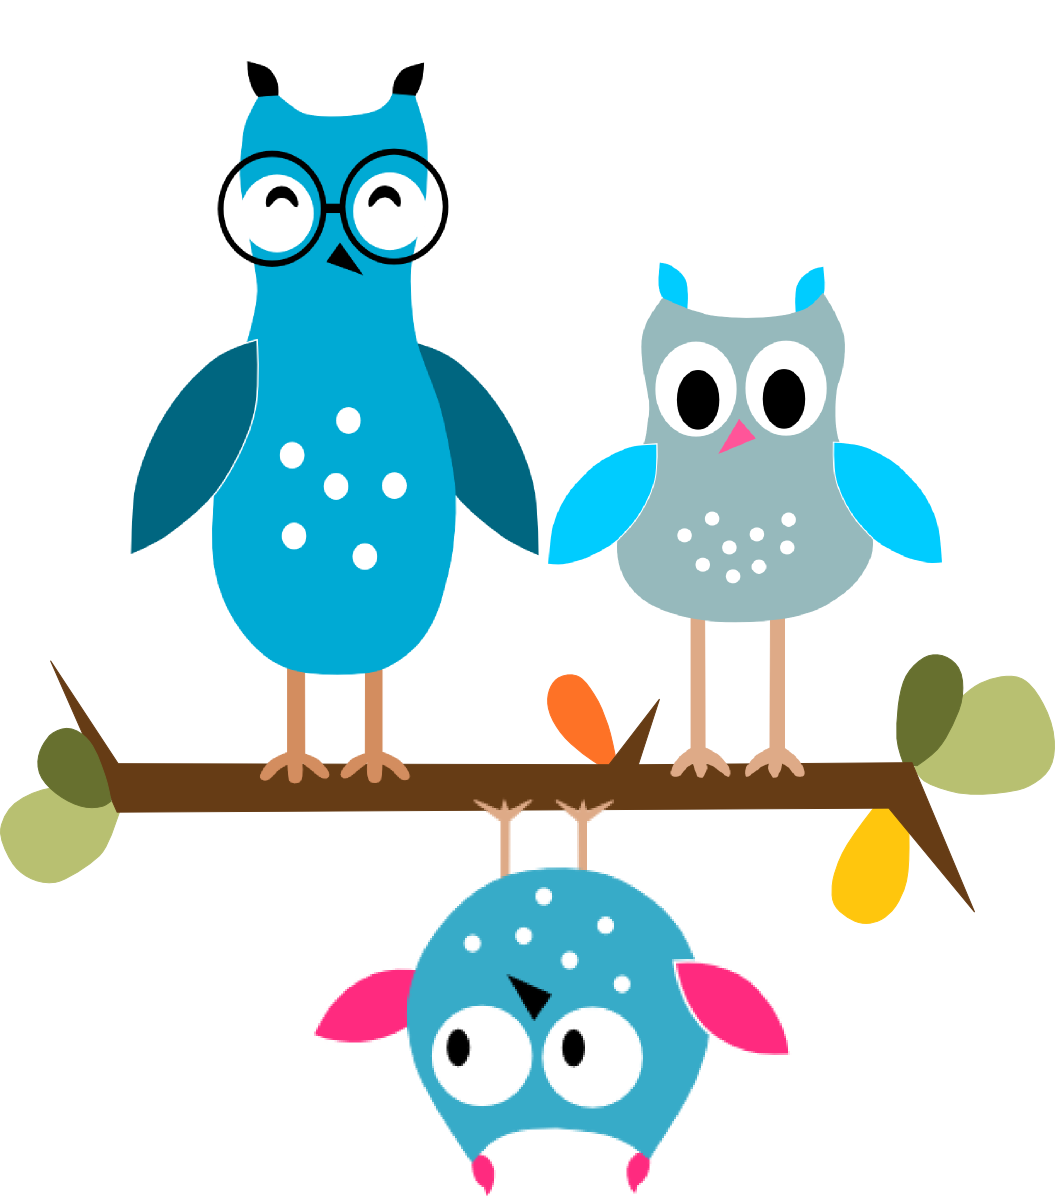 Tinkerbite childcare owls lechuzas. Clipart writing occupational therapy